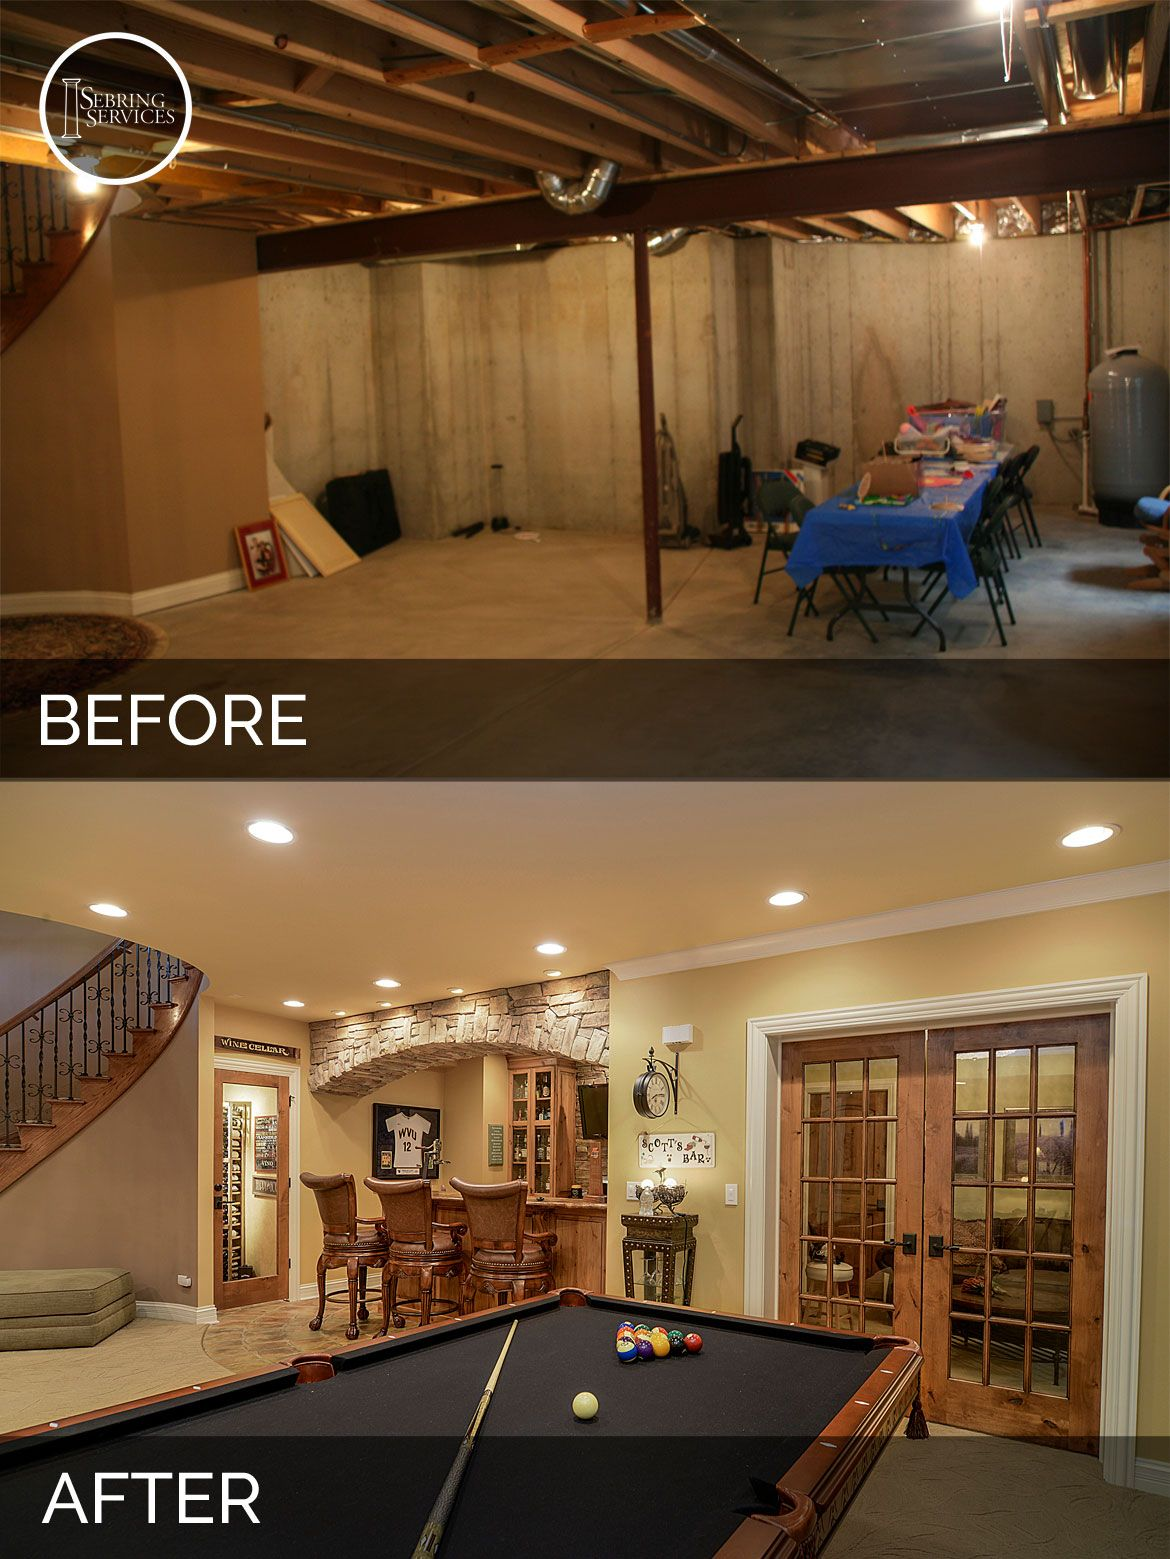 Amazing Before And After Basement Remodeling   Sebring Services